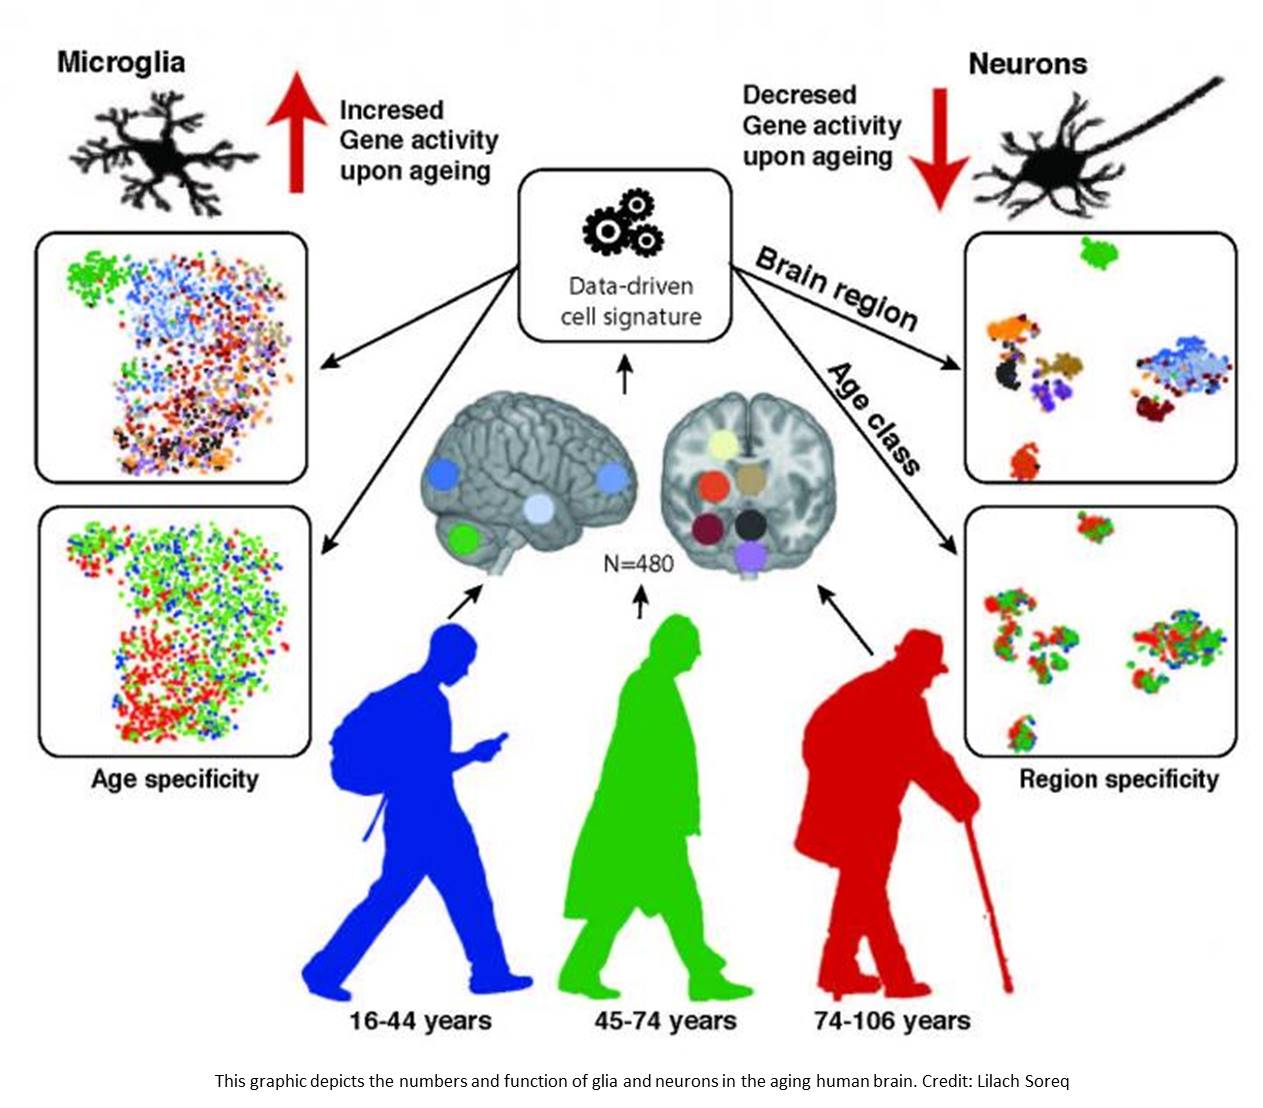 Glia, not neurons, are most affected by brain aging